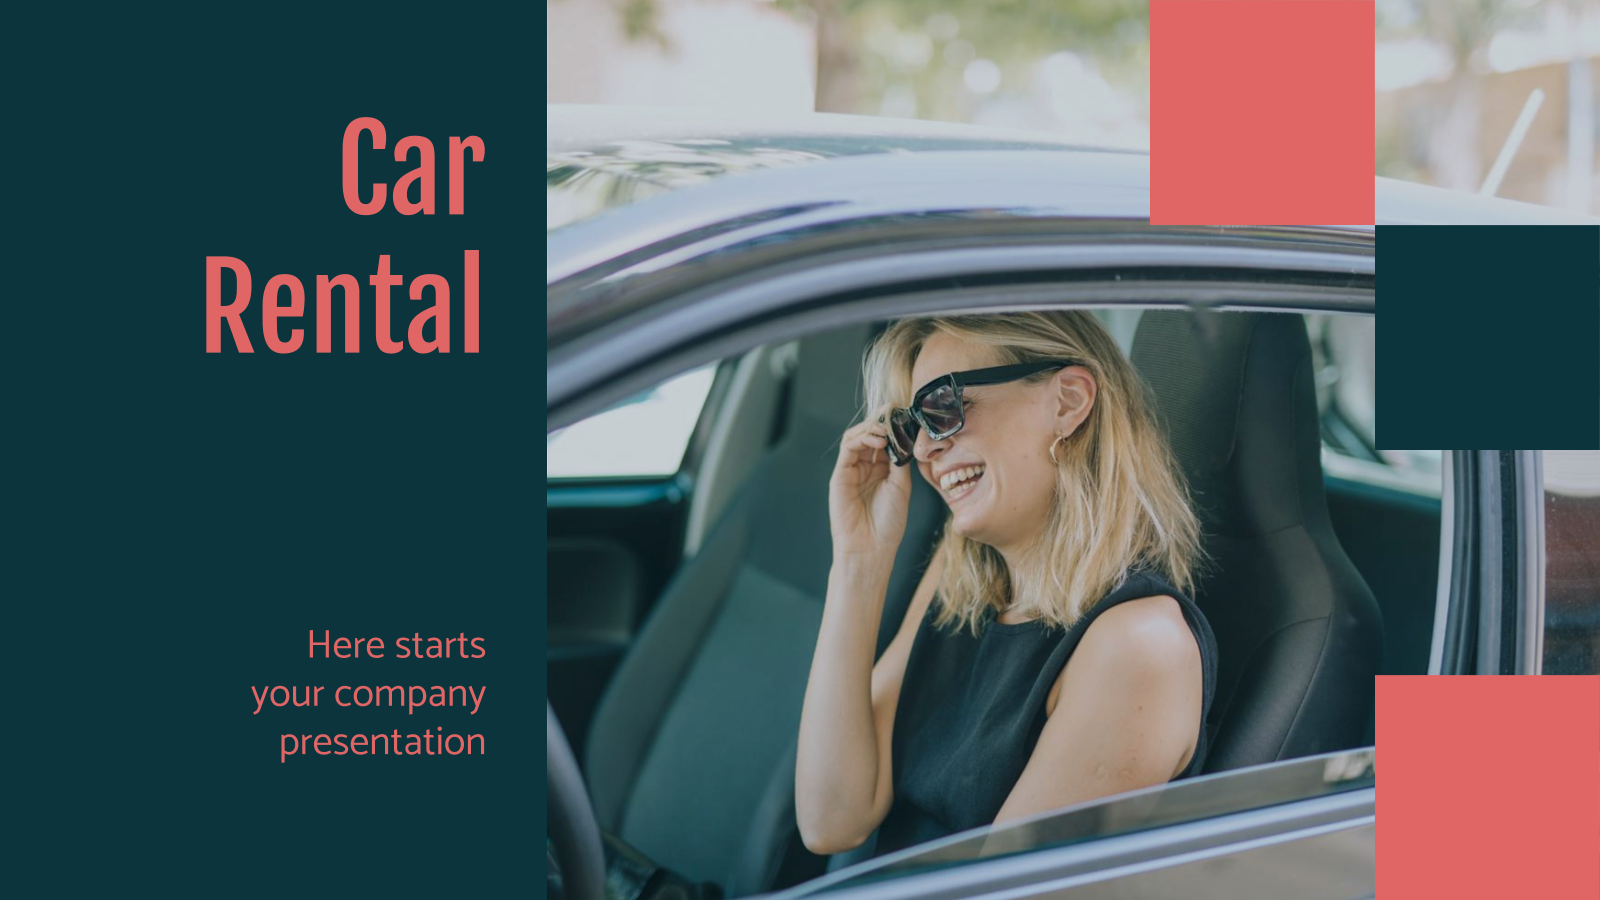 Car Rental presentation template